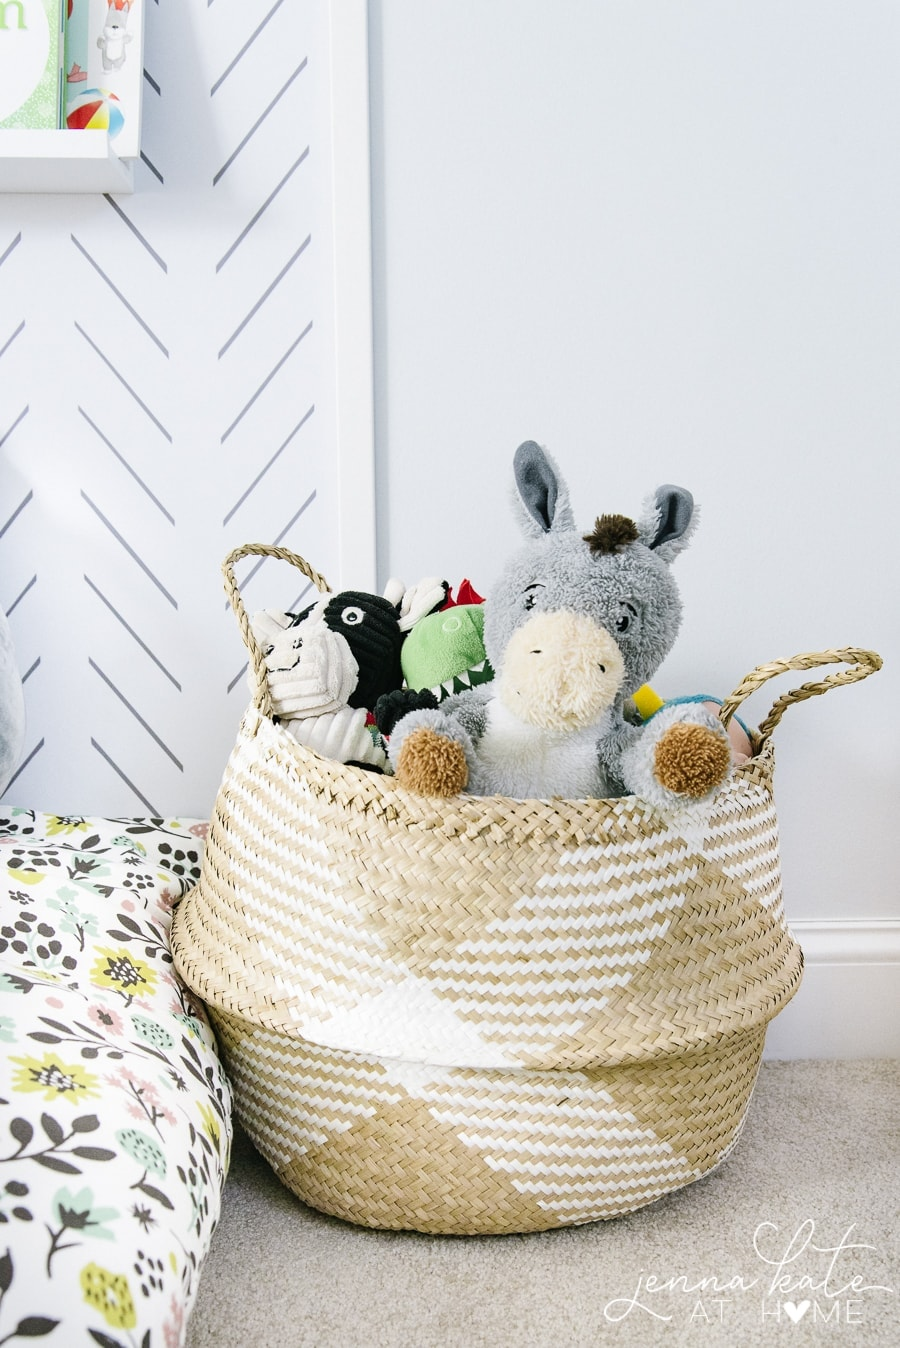 These baskets make great toy storage whether they are in a playroom or living room